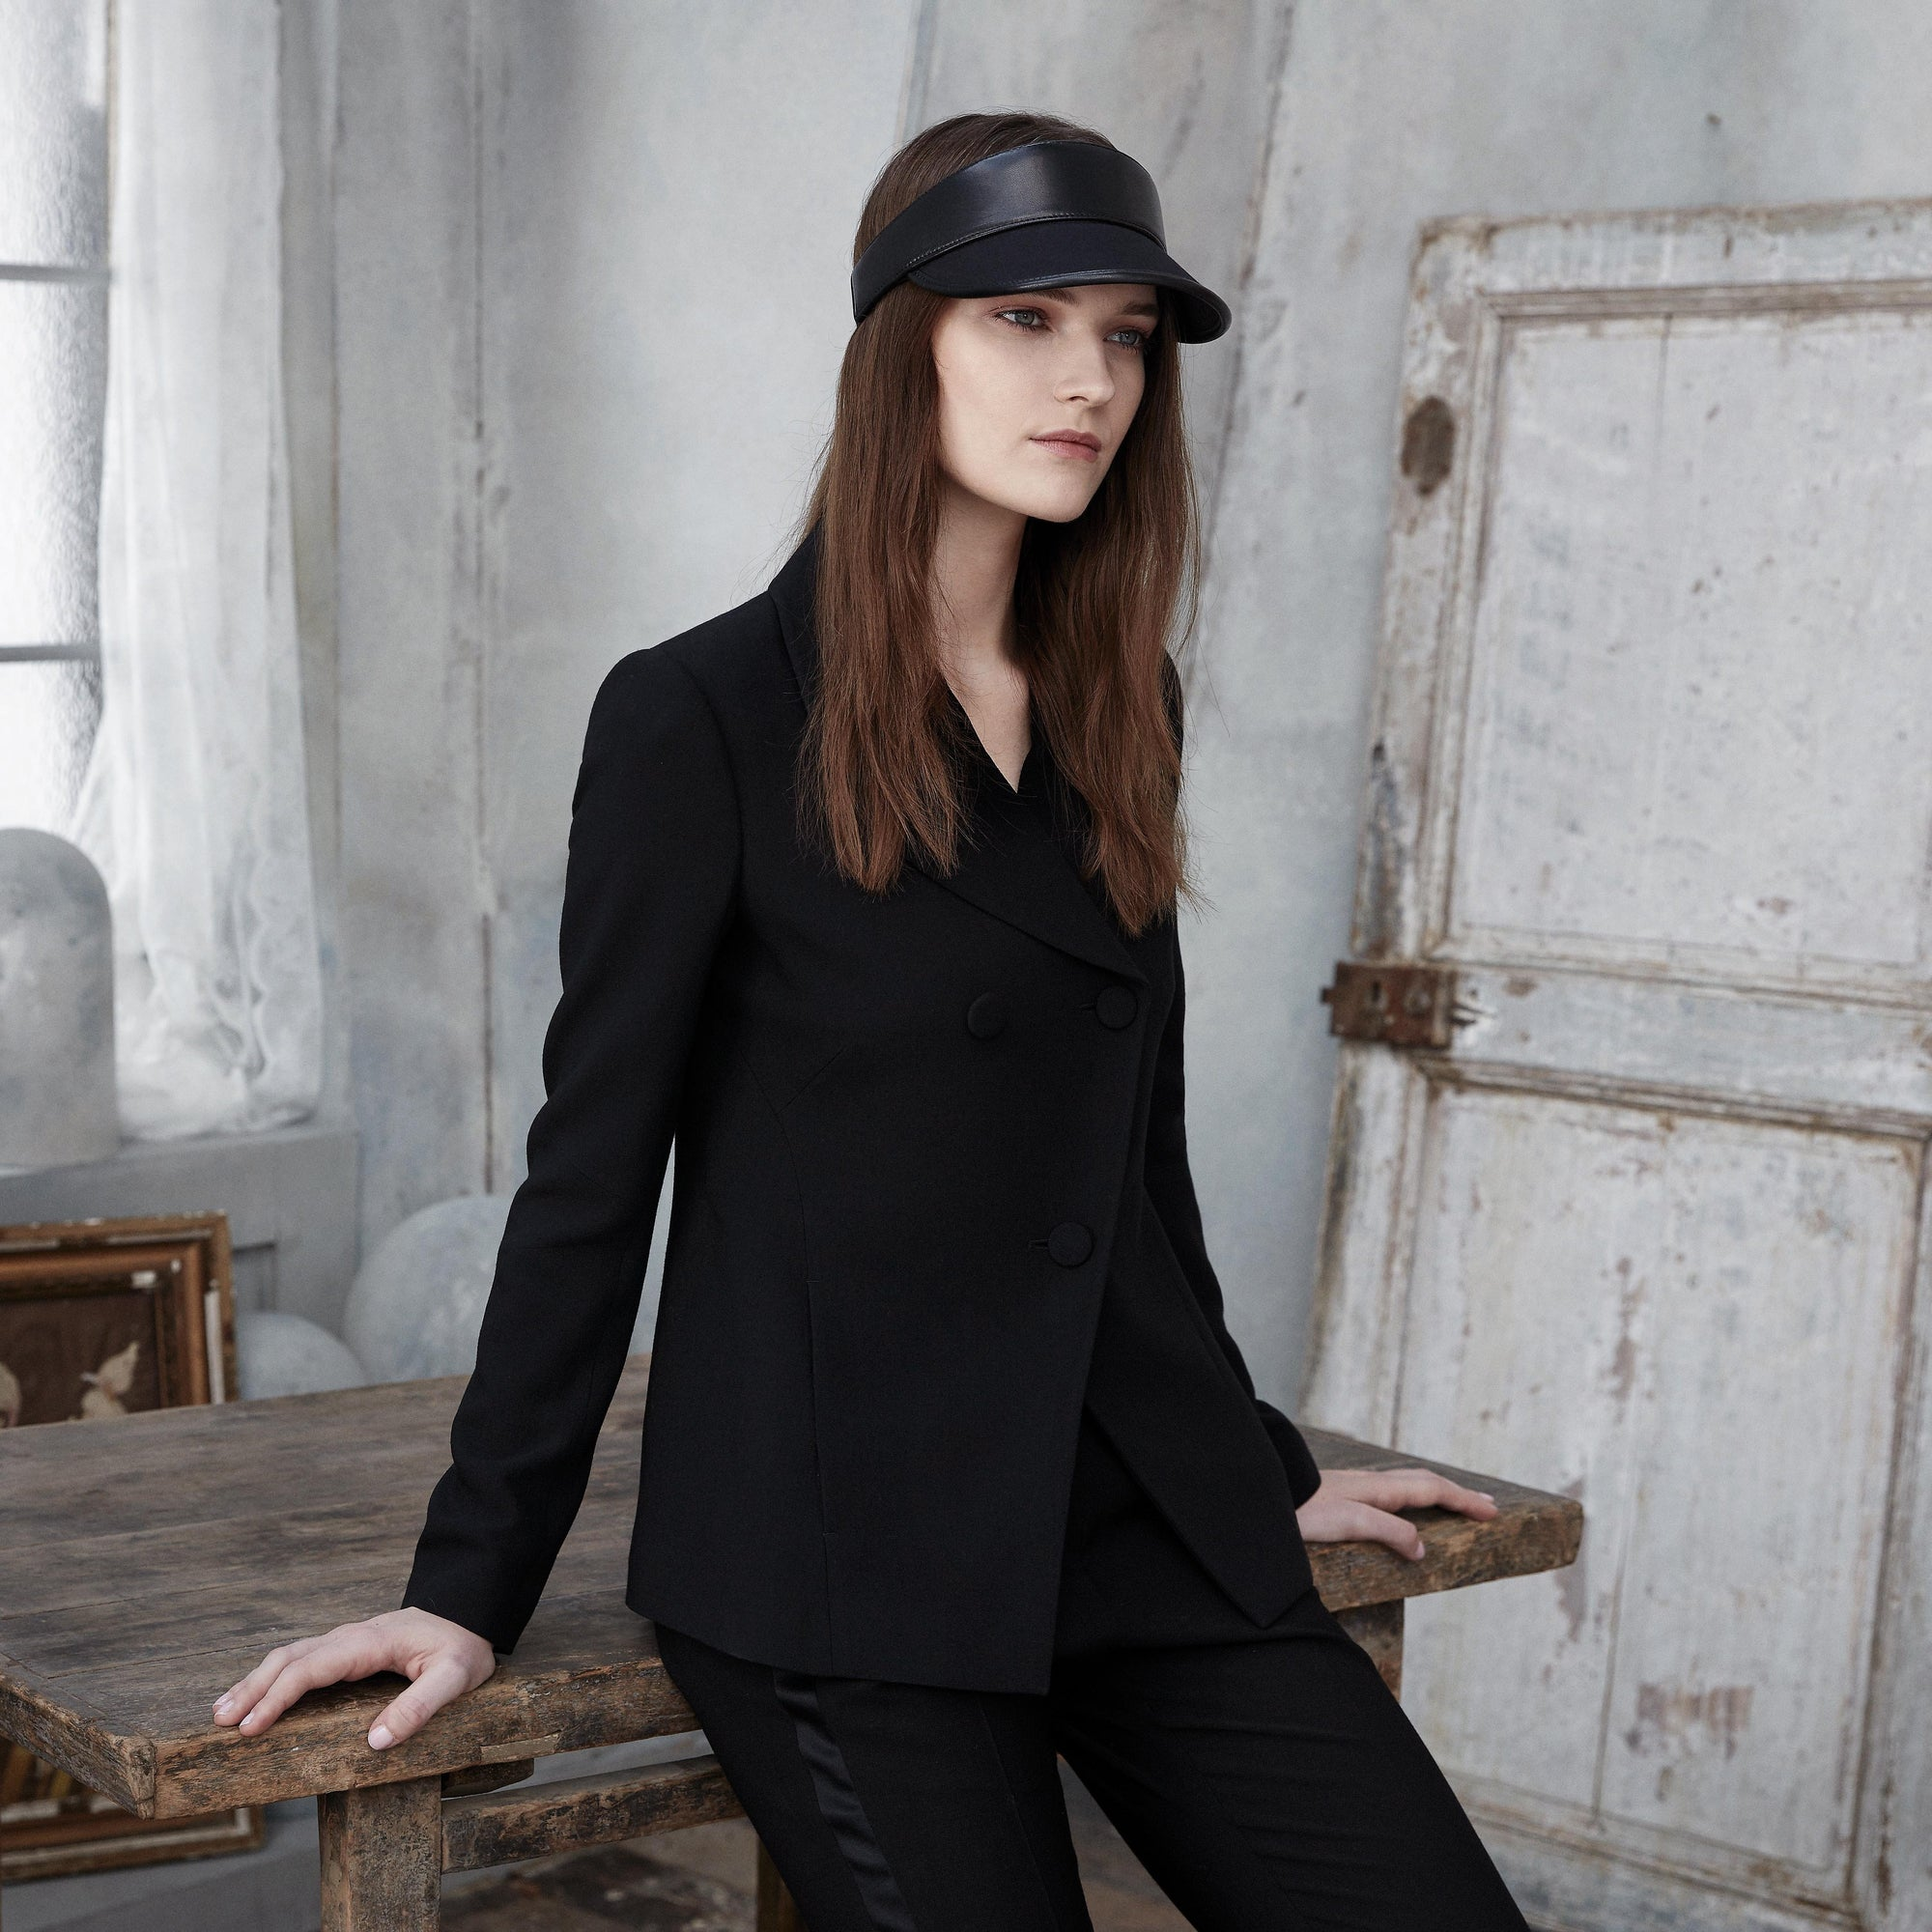 Cara visor - Women's hats - Lock & Co. Hatters London UK